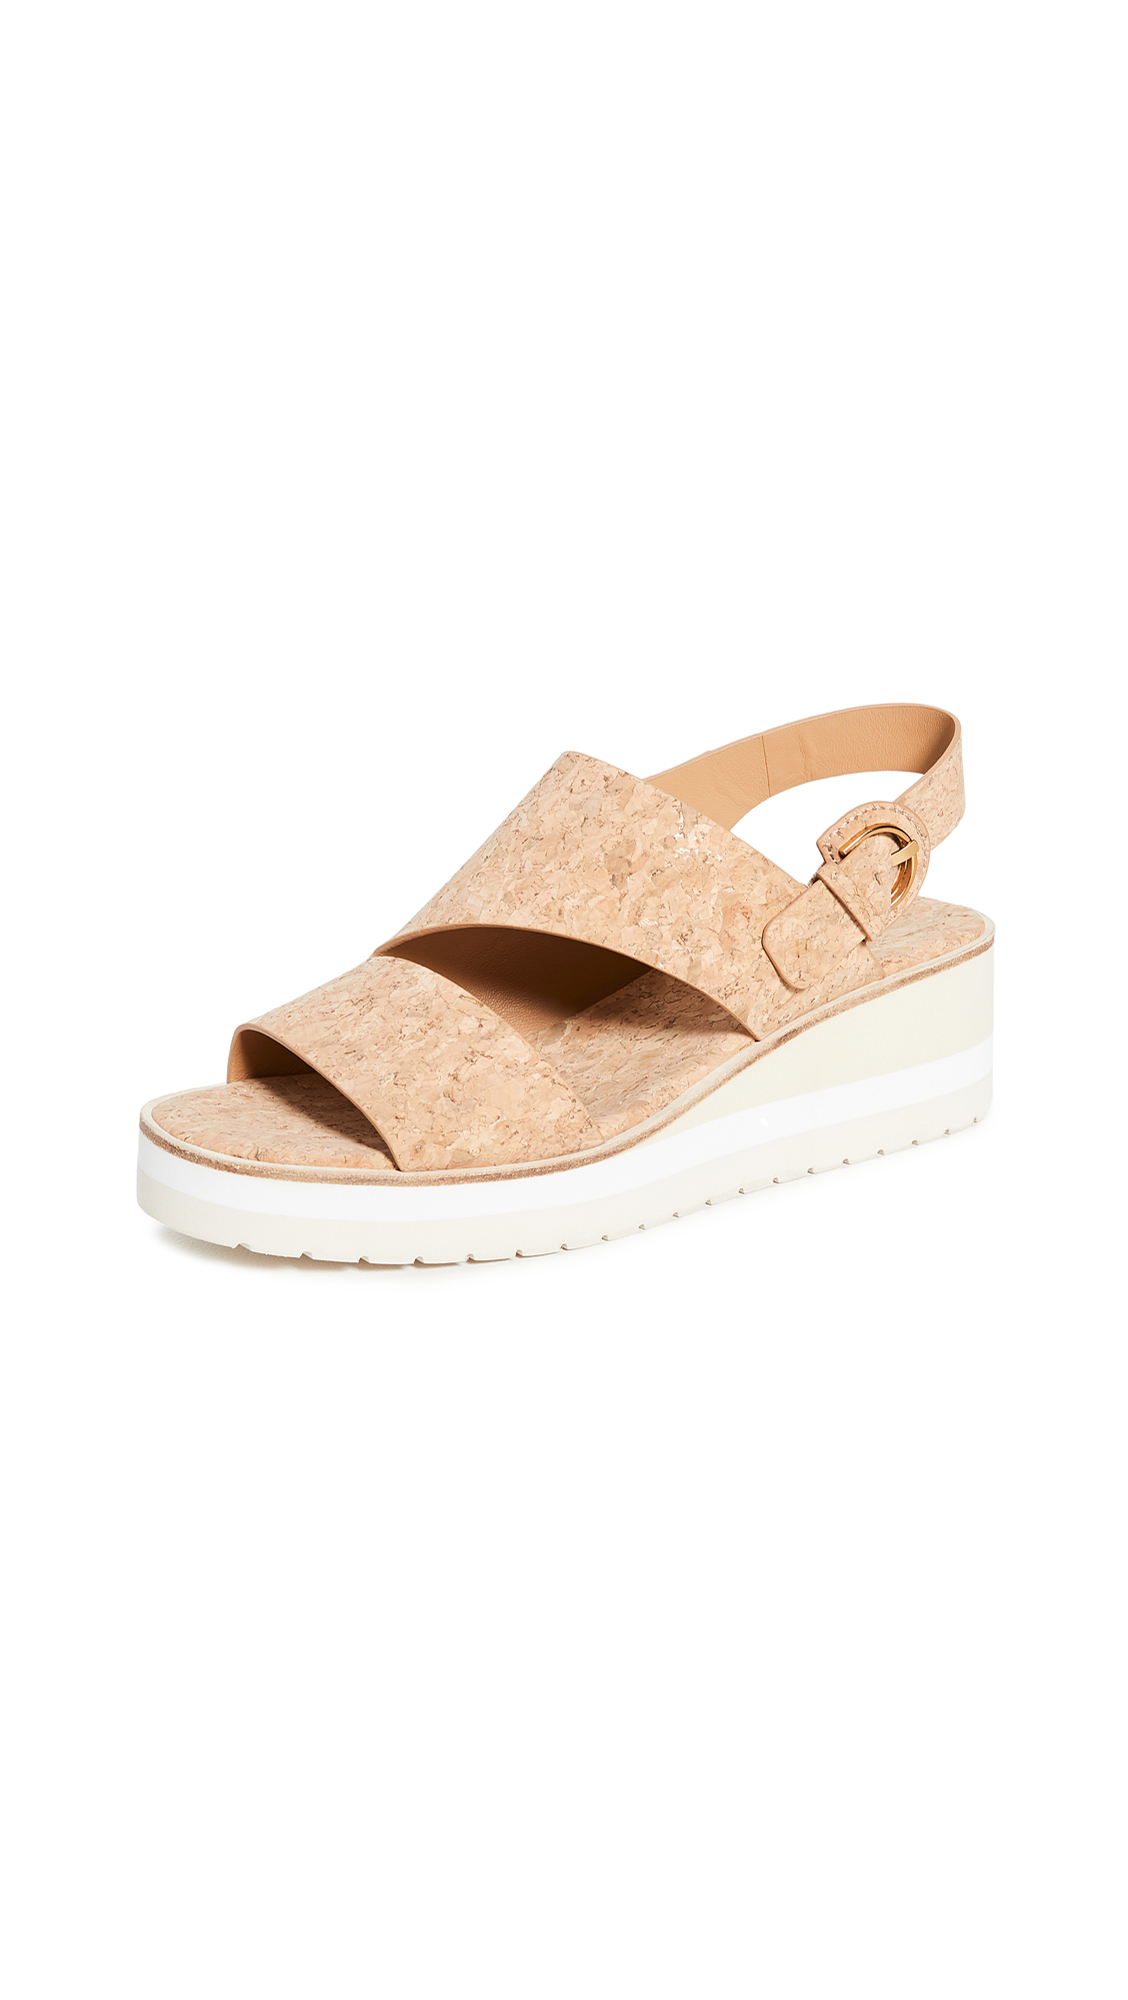 Vince Shelby Wedge Sandals - 70% Off Sale